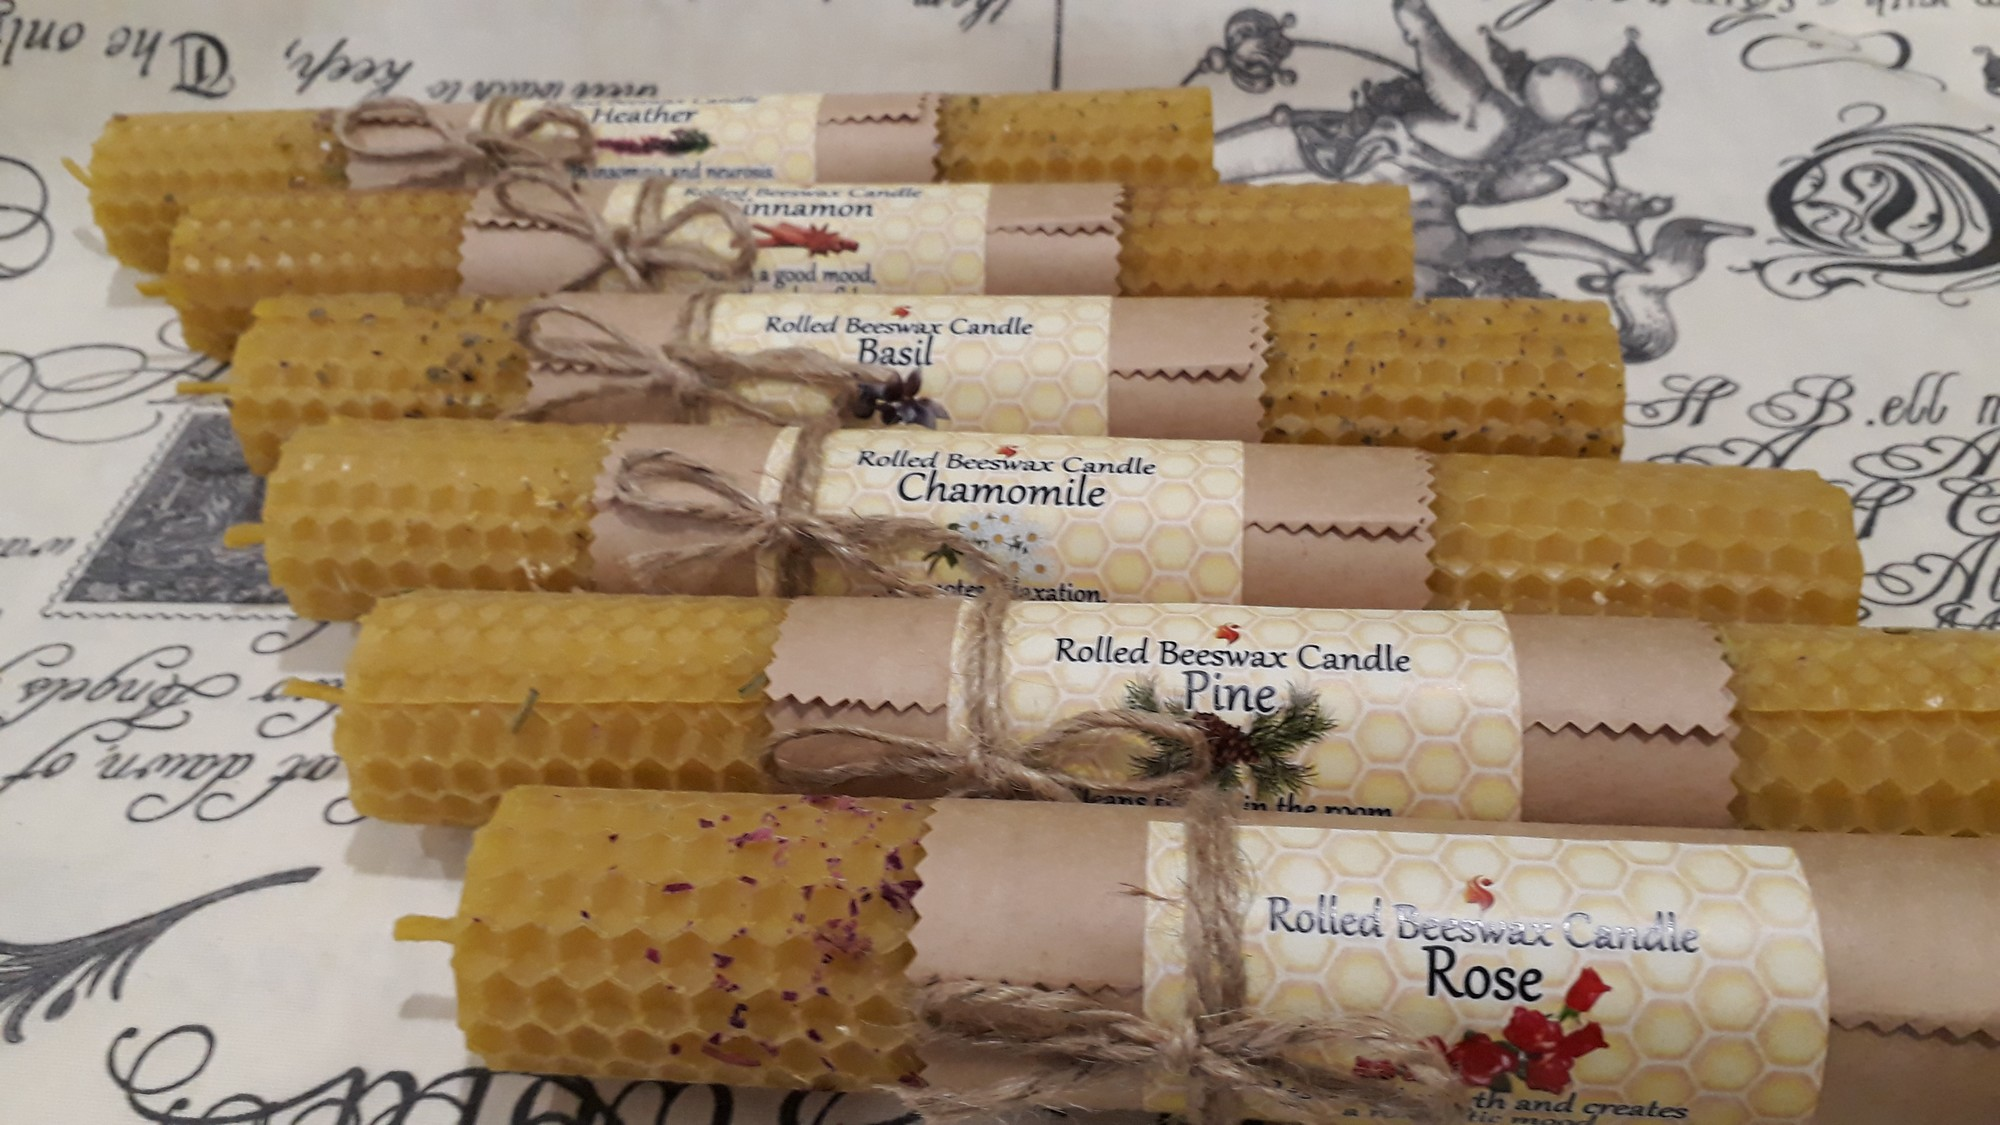 Rolled Beeswax Candles with herbs